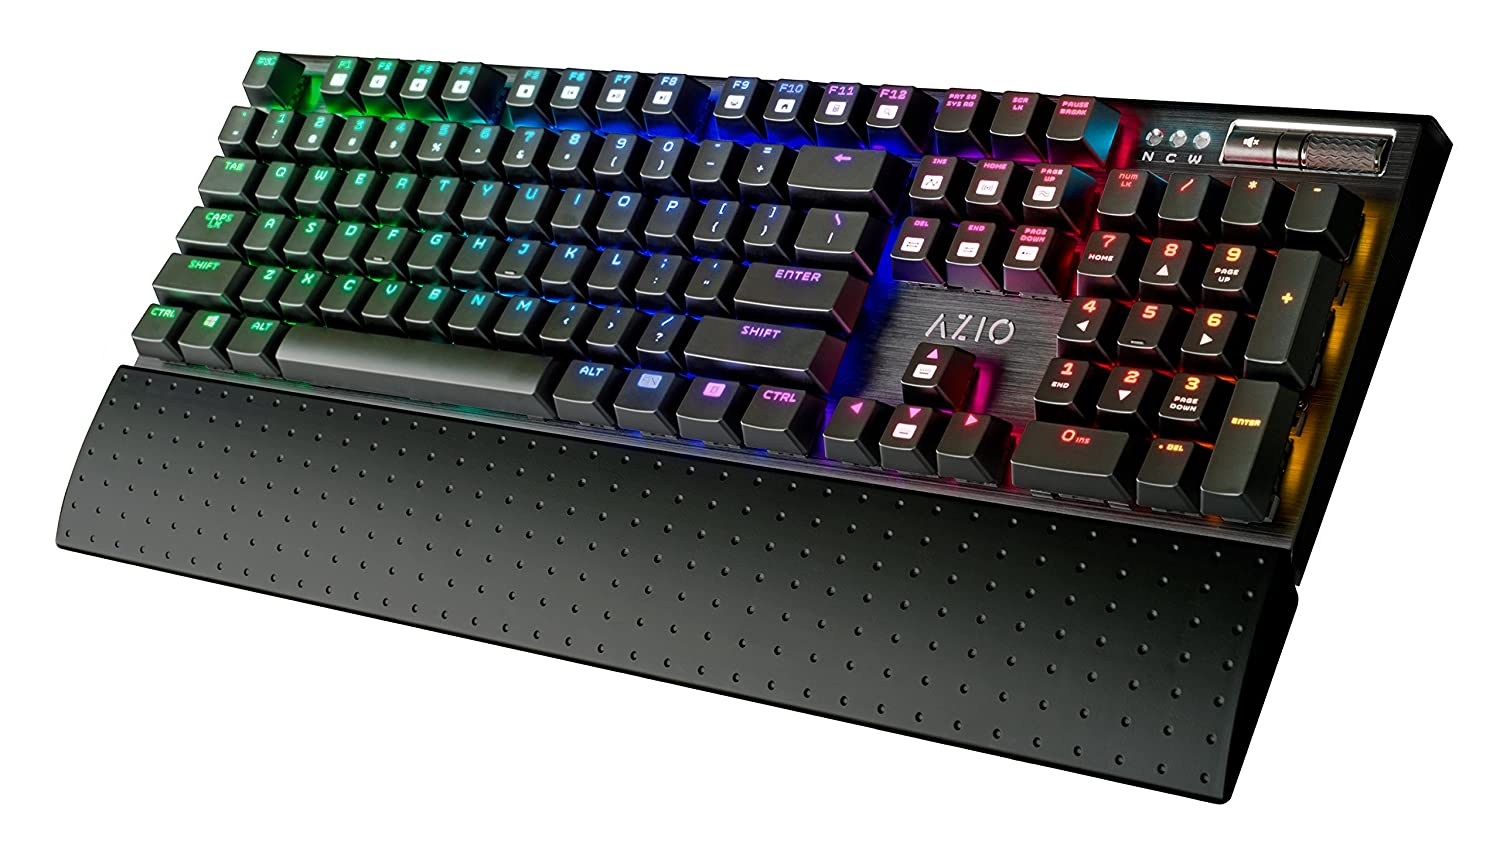 Amazon mechanical keyboard - Amazon Com Azio Rgb Backlit Mechanical Gaming Keyboard Mgk1 Rgb Computers Accessories